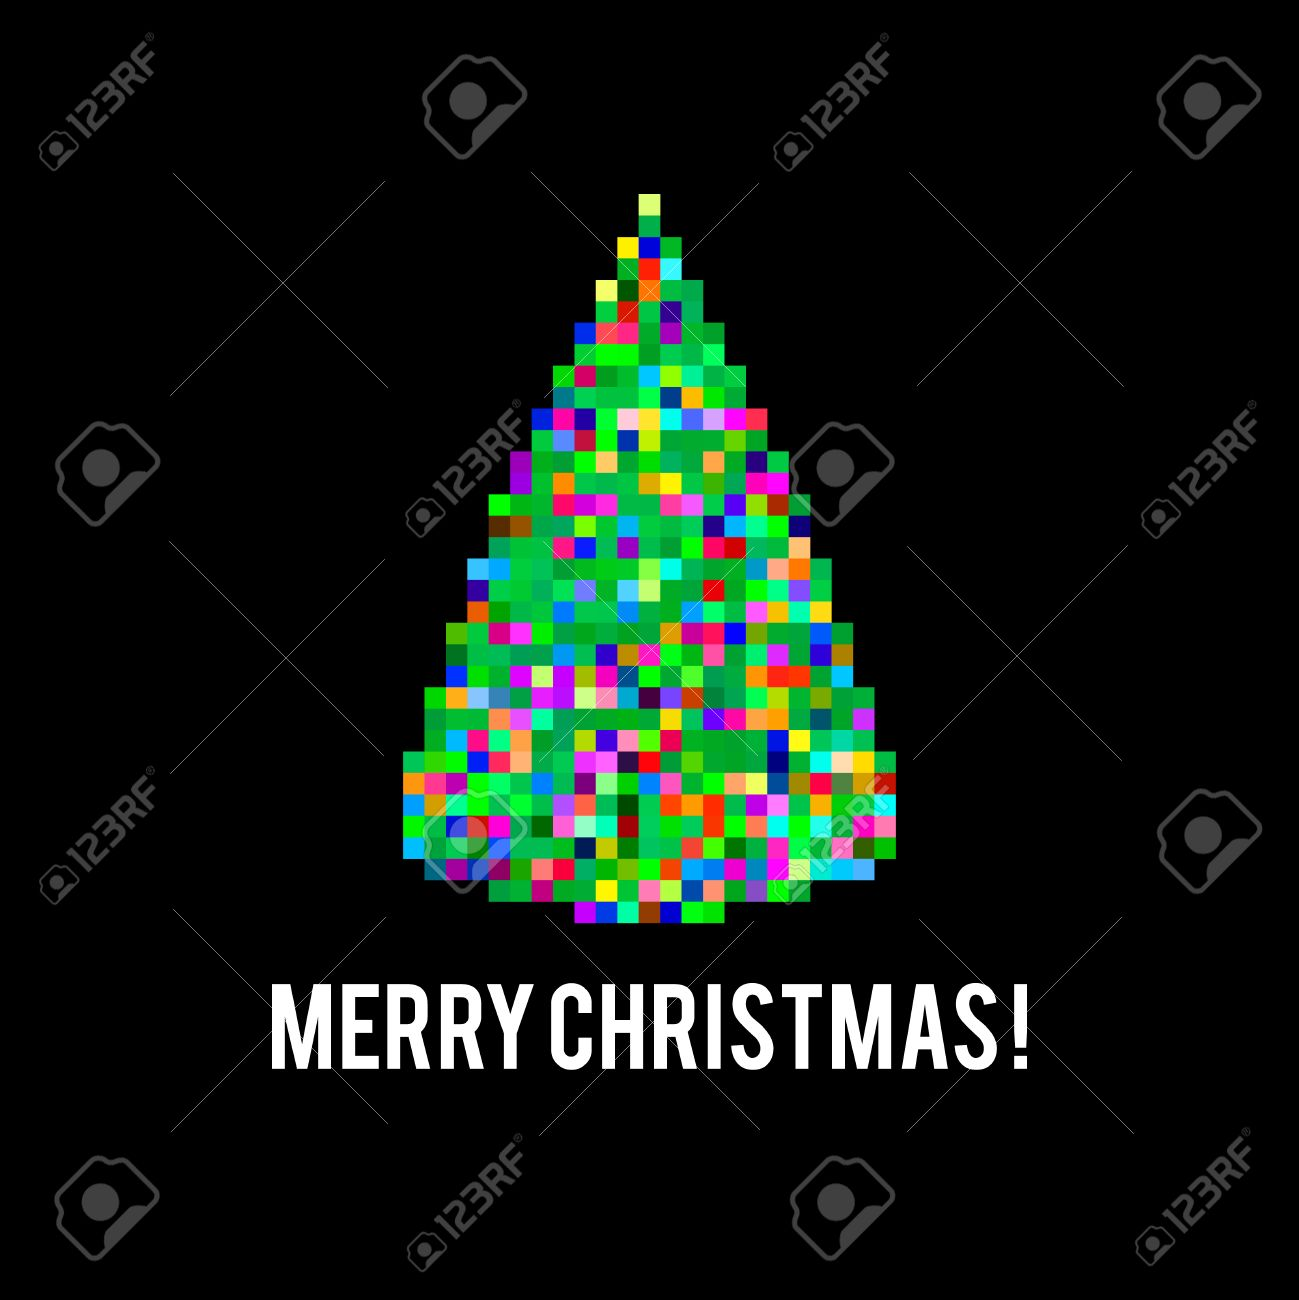 pixel art different colored bright christmas tree on black background stock vector 36807023 - Different Christmas Trees